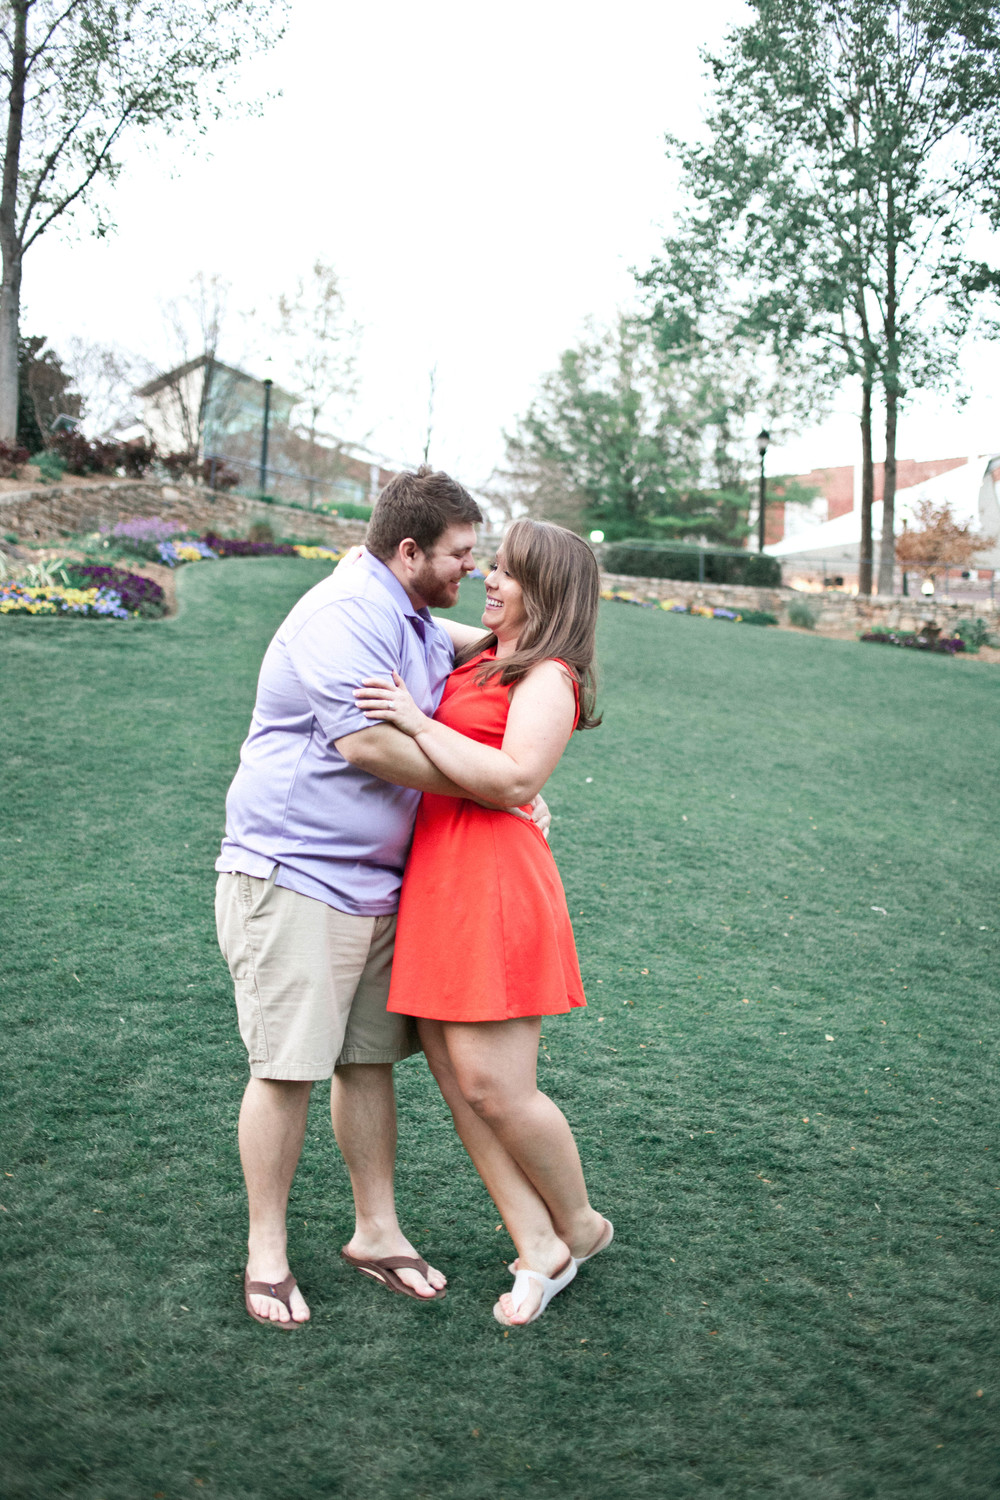 zach_gabbie_engagement_poured_out_photography-60.jpg